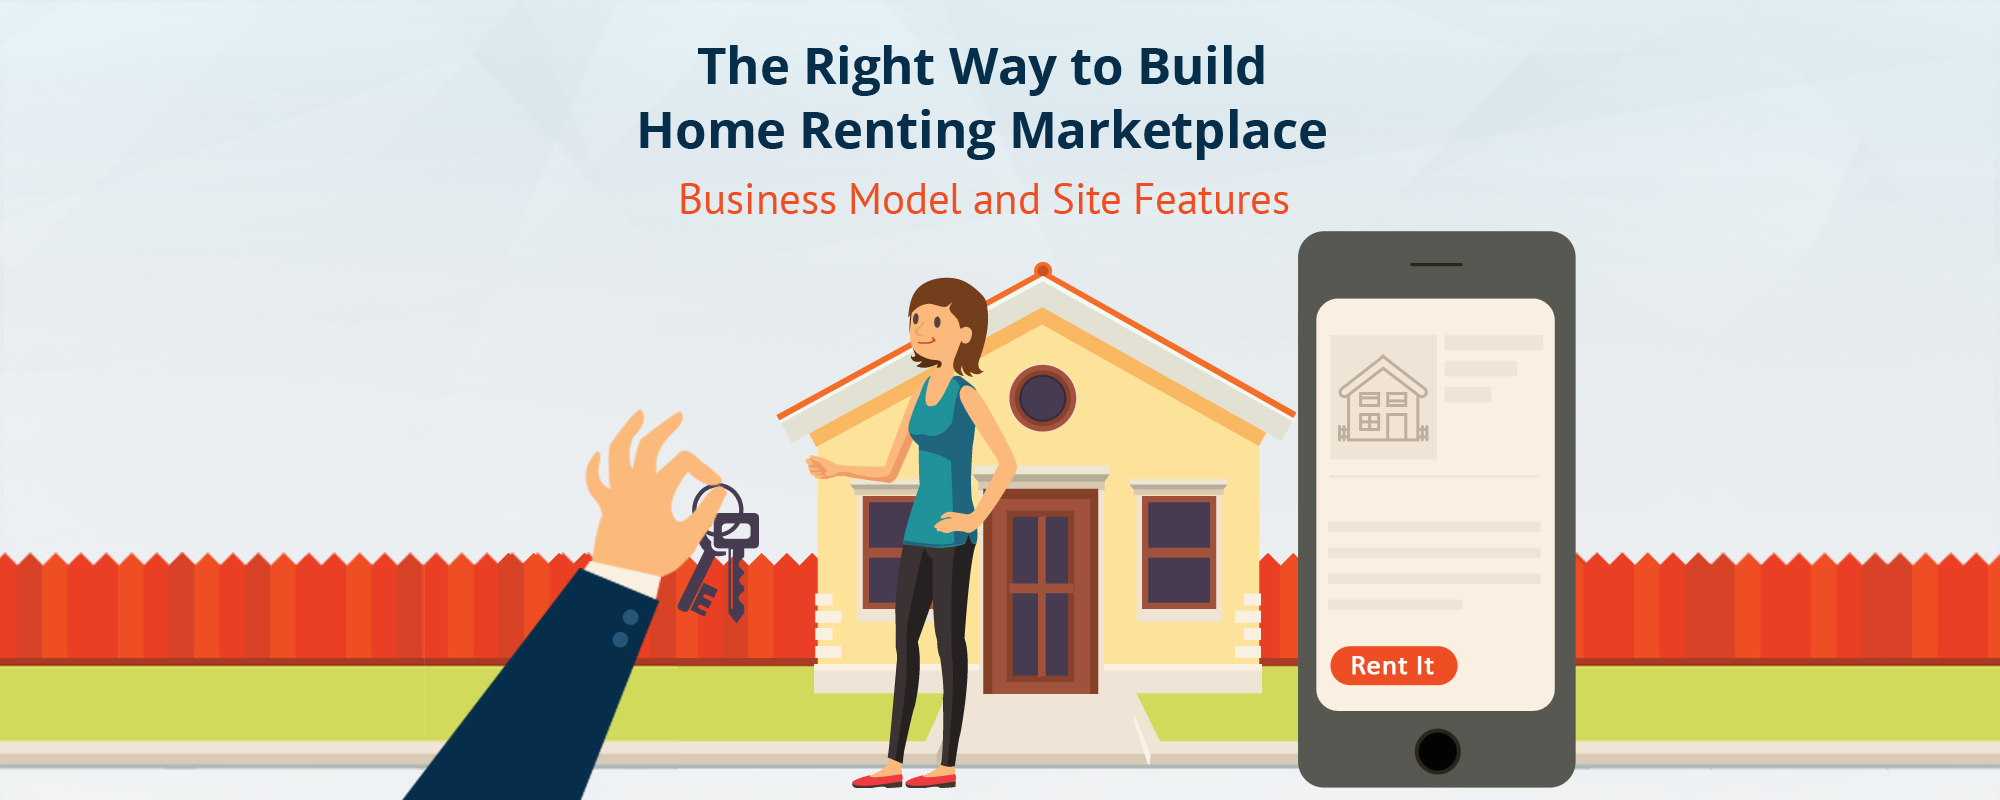 P2P Home Renting Script Guide: Detailed Feature List & Business Model for Entrepreneurs